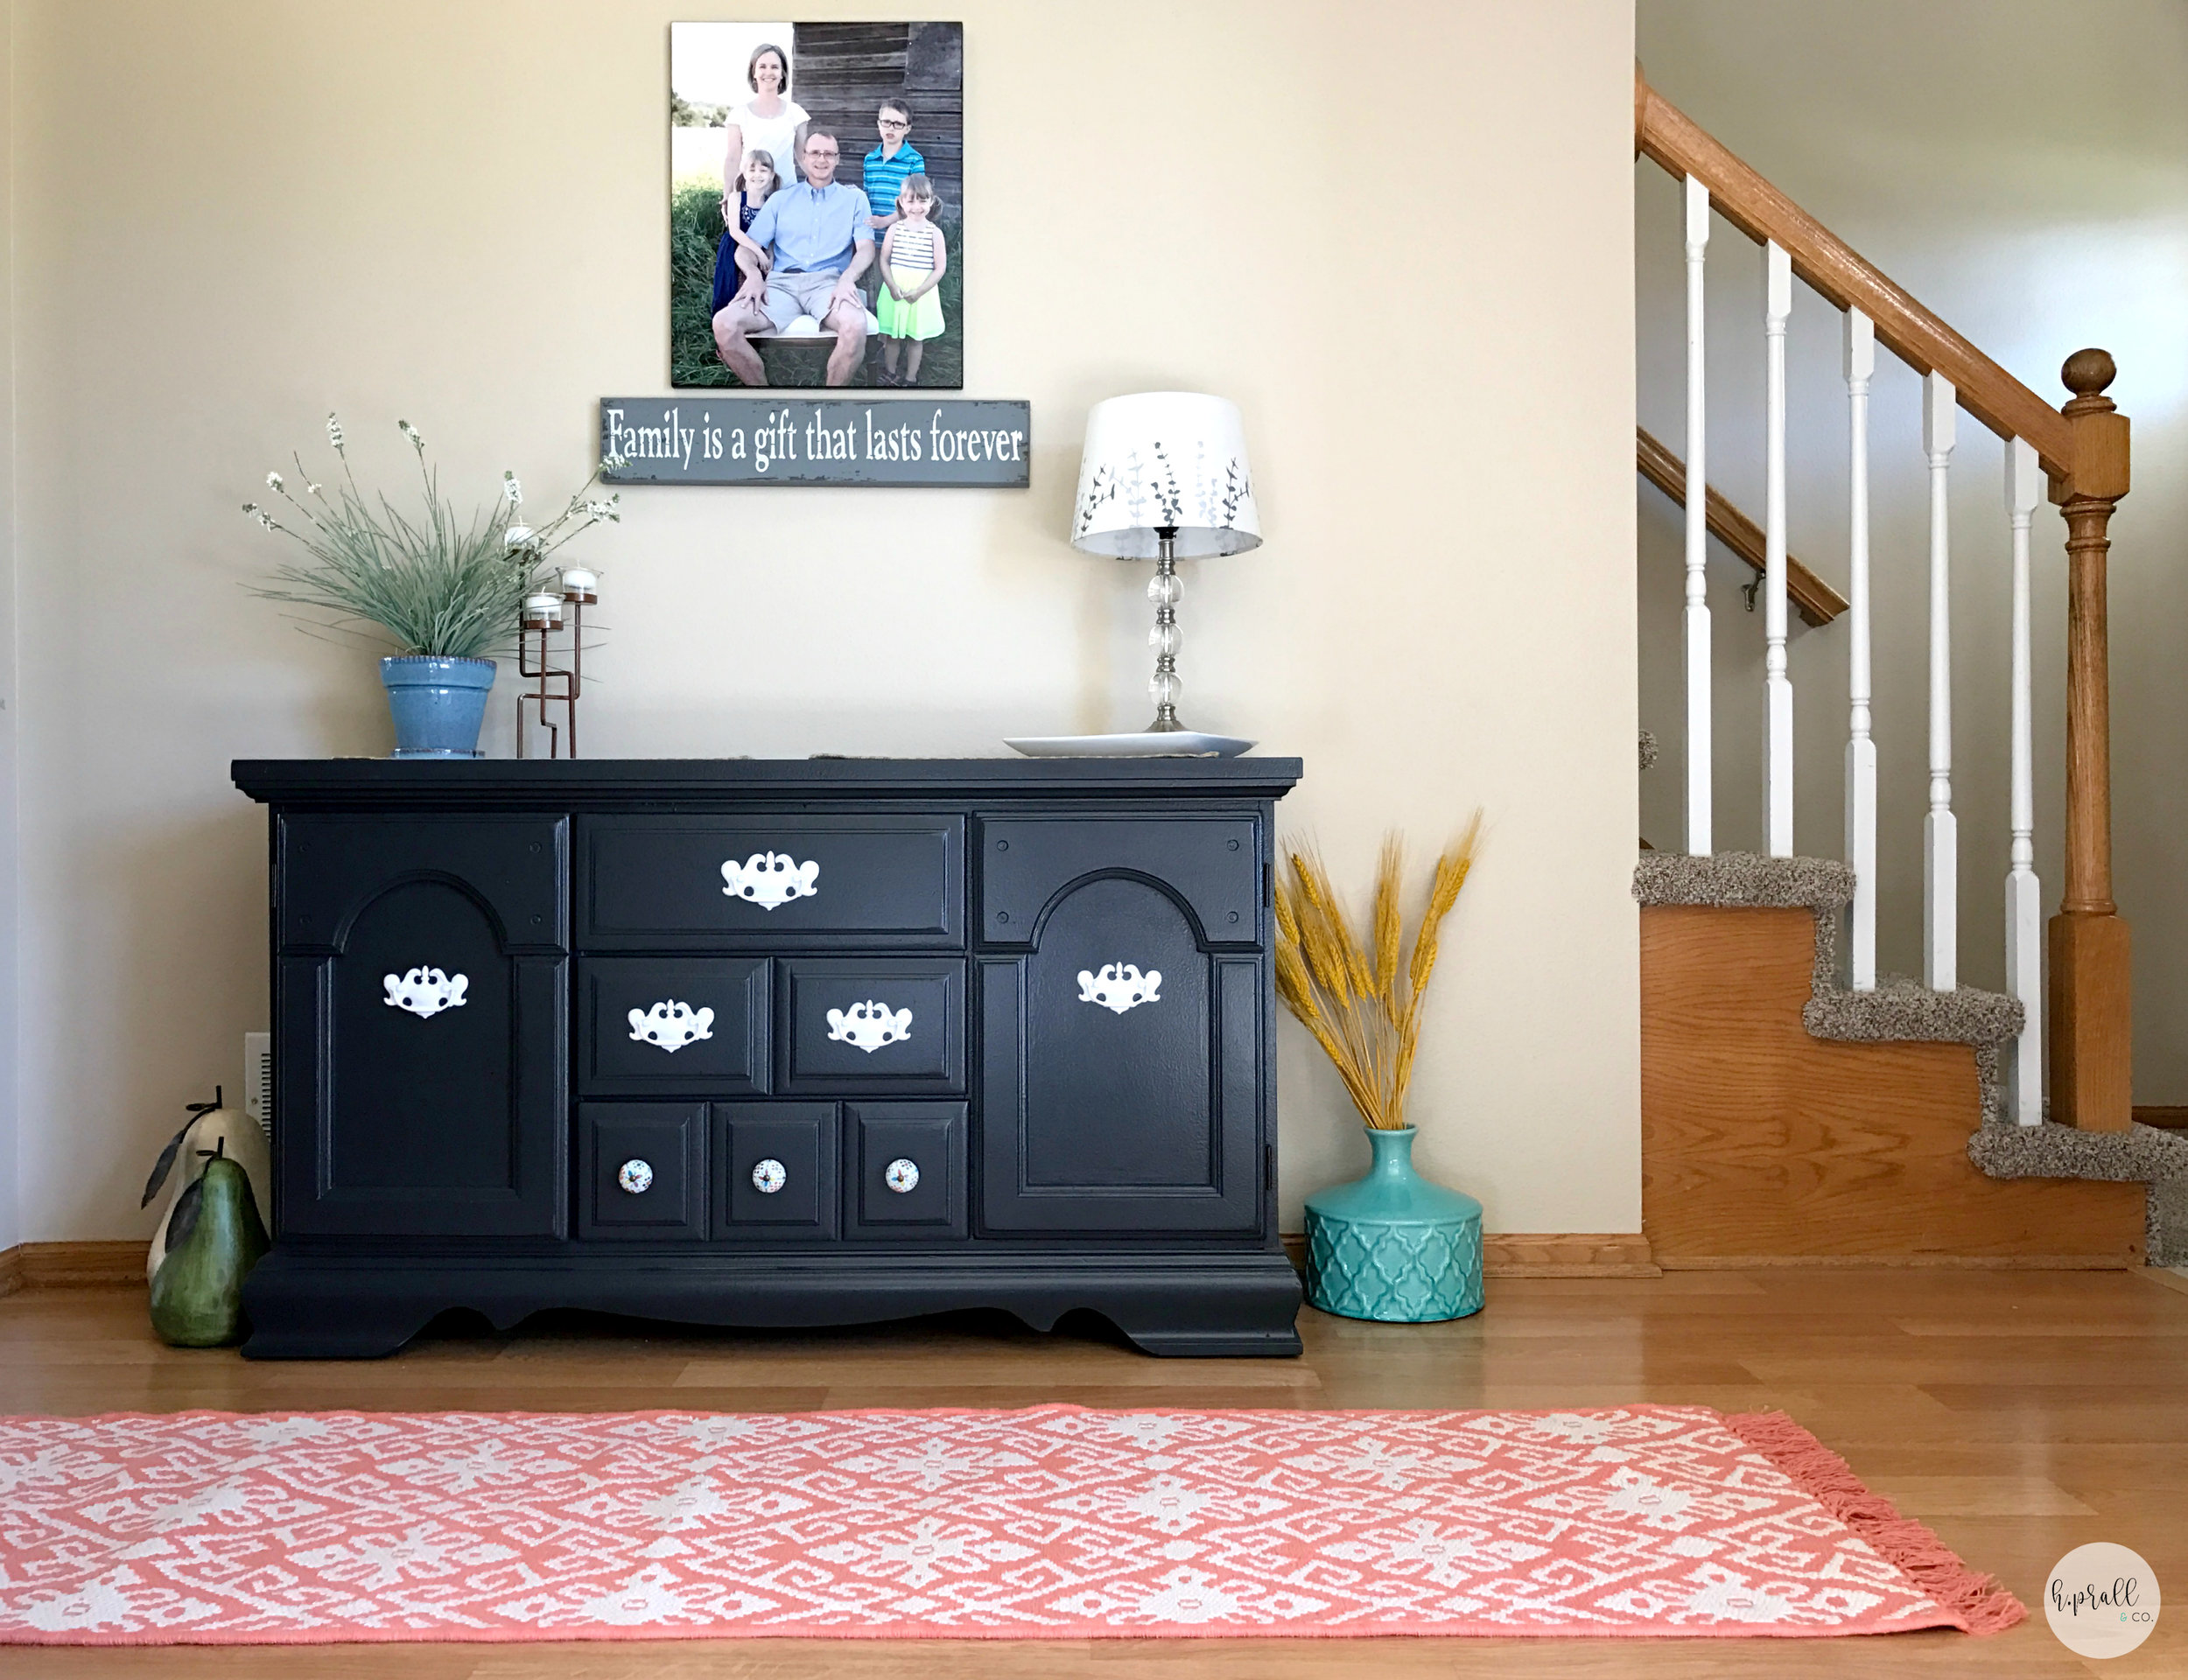 The #1 Tip for Decorating Your Home by H.Prall & Co. Interior Decorating | hprallandco.com